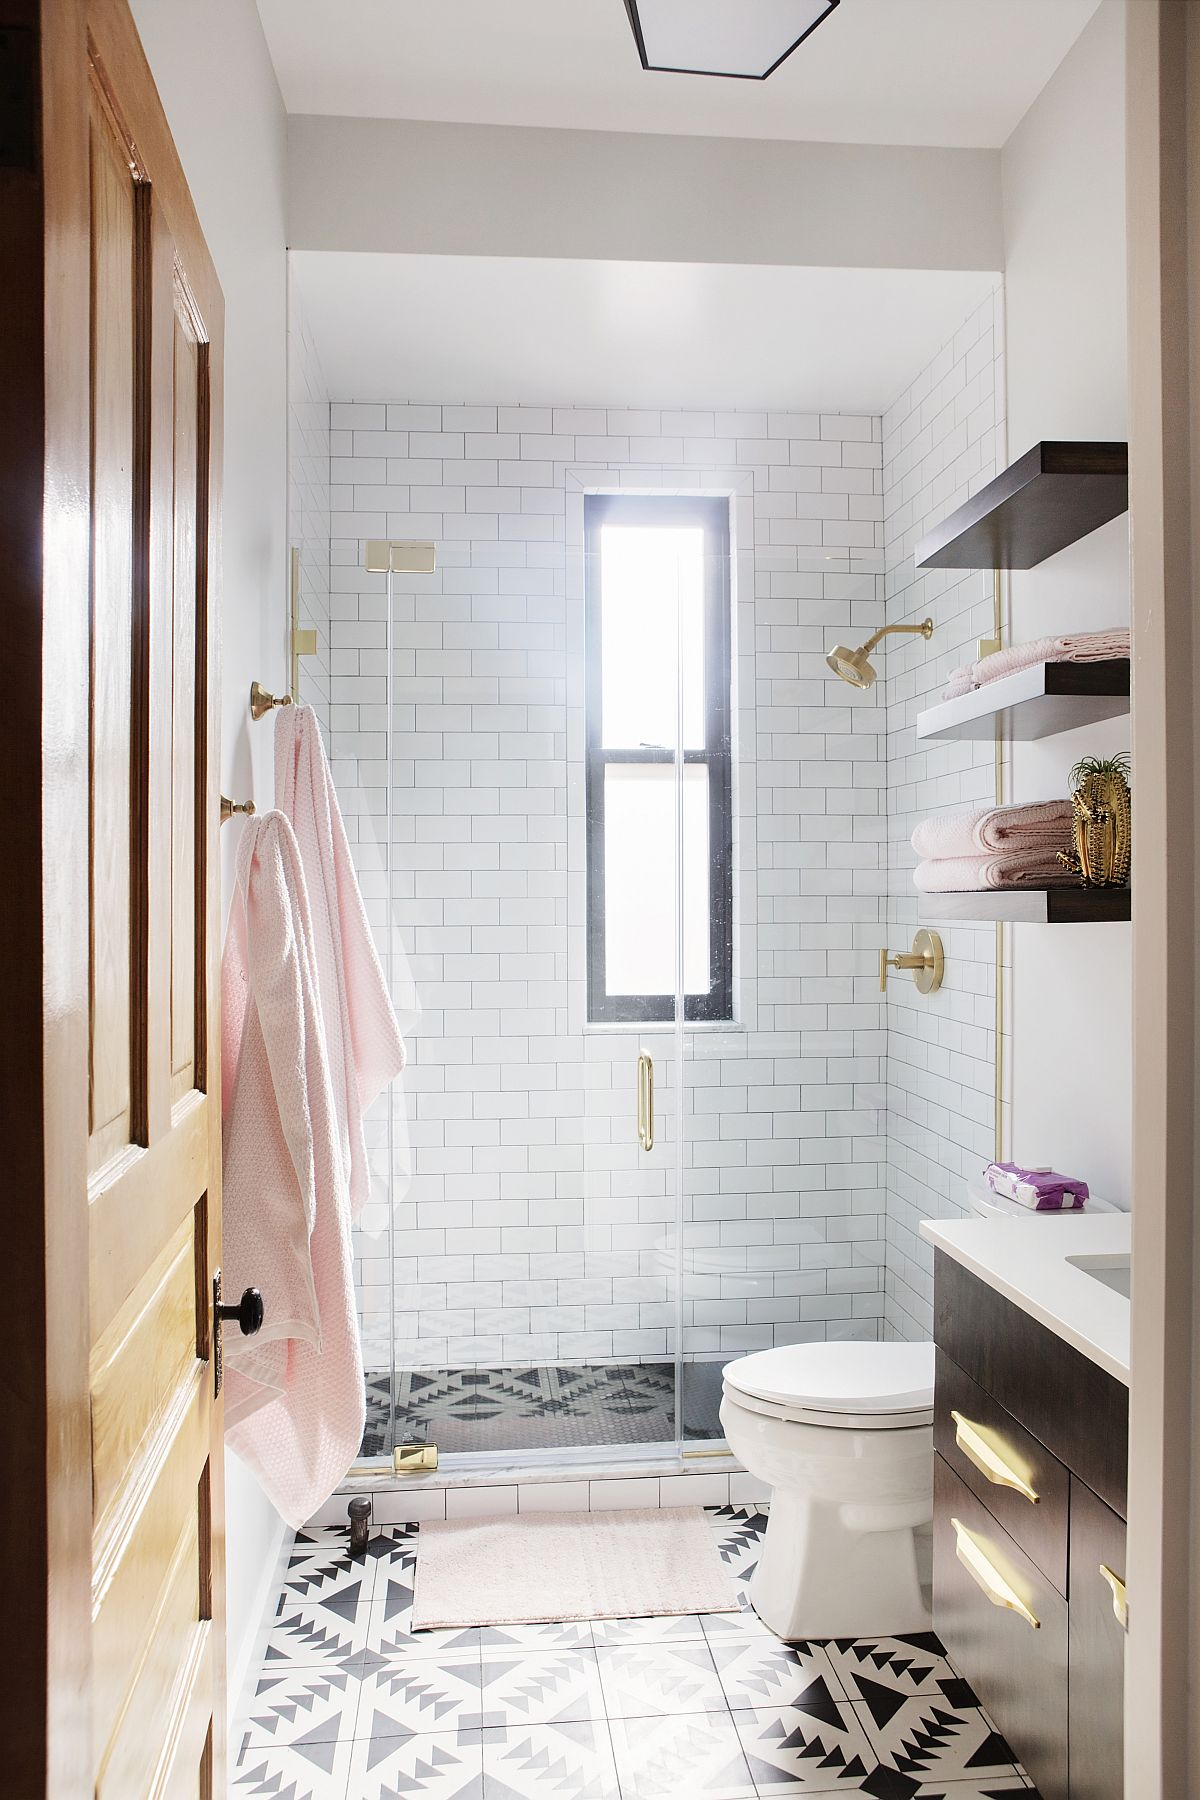 Tiles in black and white add pattern to the bathroom floor